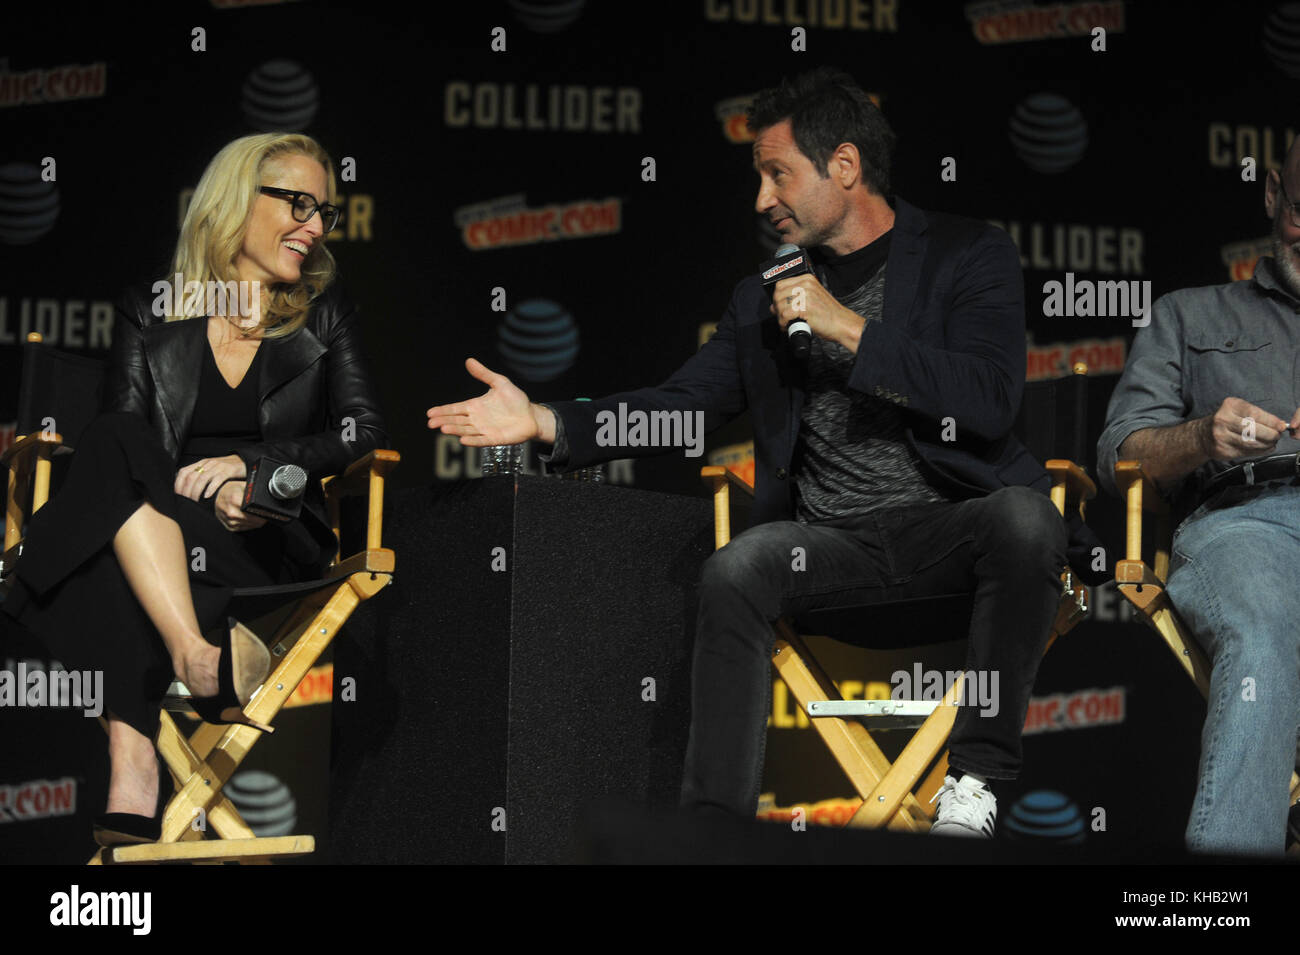 NEW YORK, NY - OCTOBER 08: Gillian Anderson, David Duchovny  speaks onstage at The X-Files panel during 2017 New - Stock Image